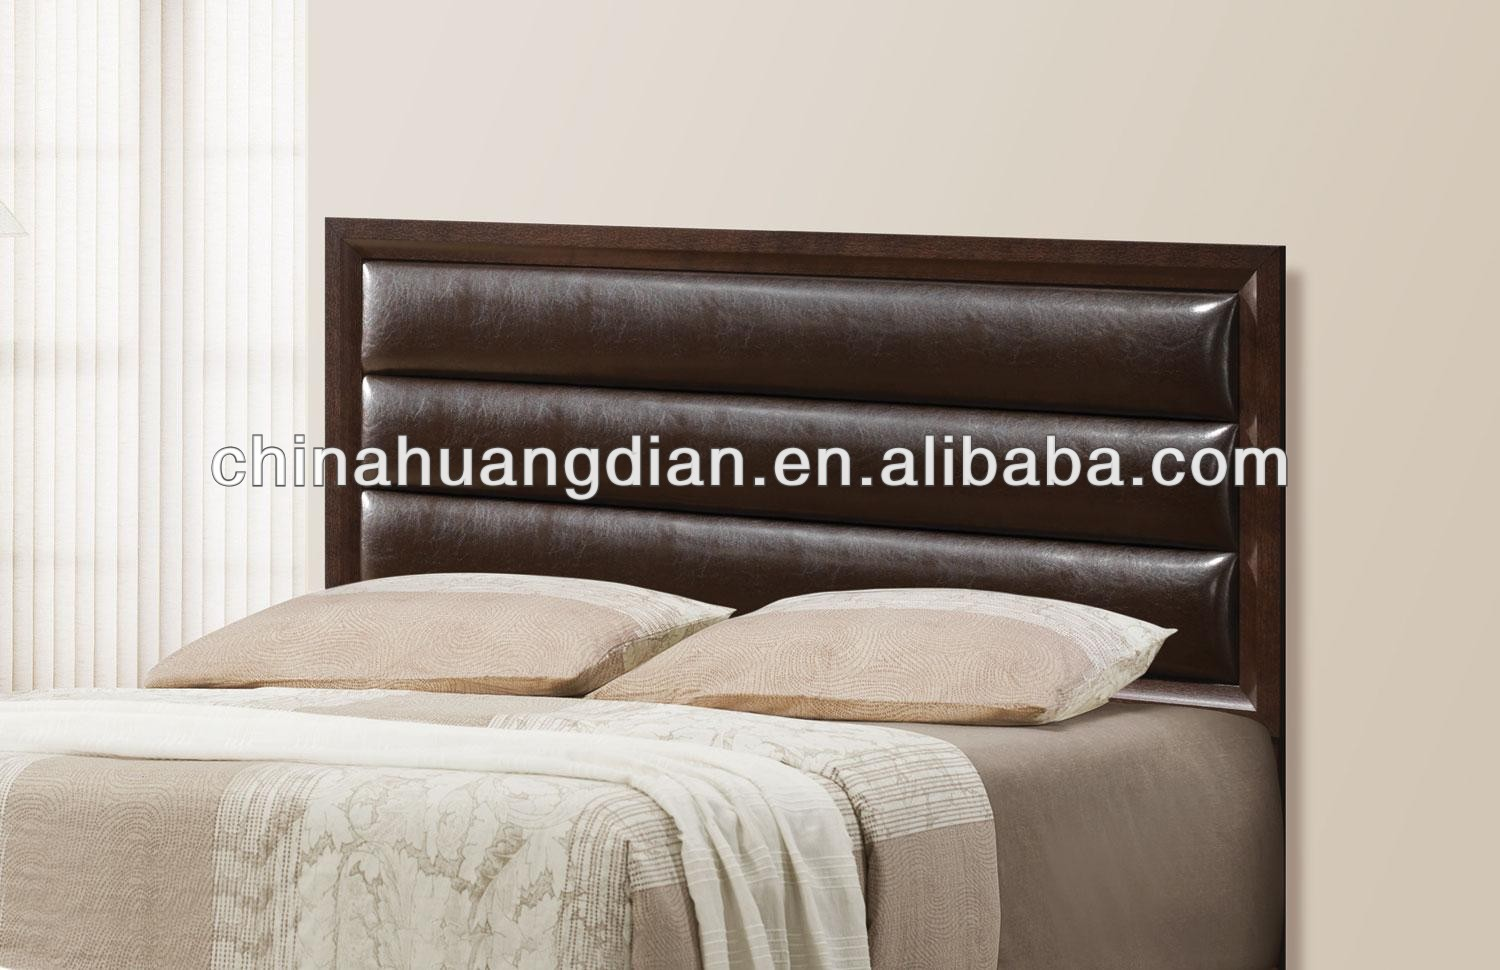 wooden bed headboards wooden bed headboards suppliers and  - wooden bed headboards wooden bed headboards suppliers and manufacturers atalibabacom